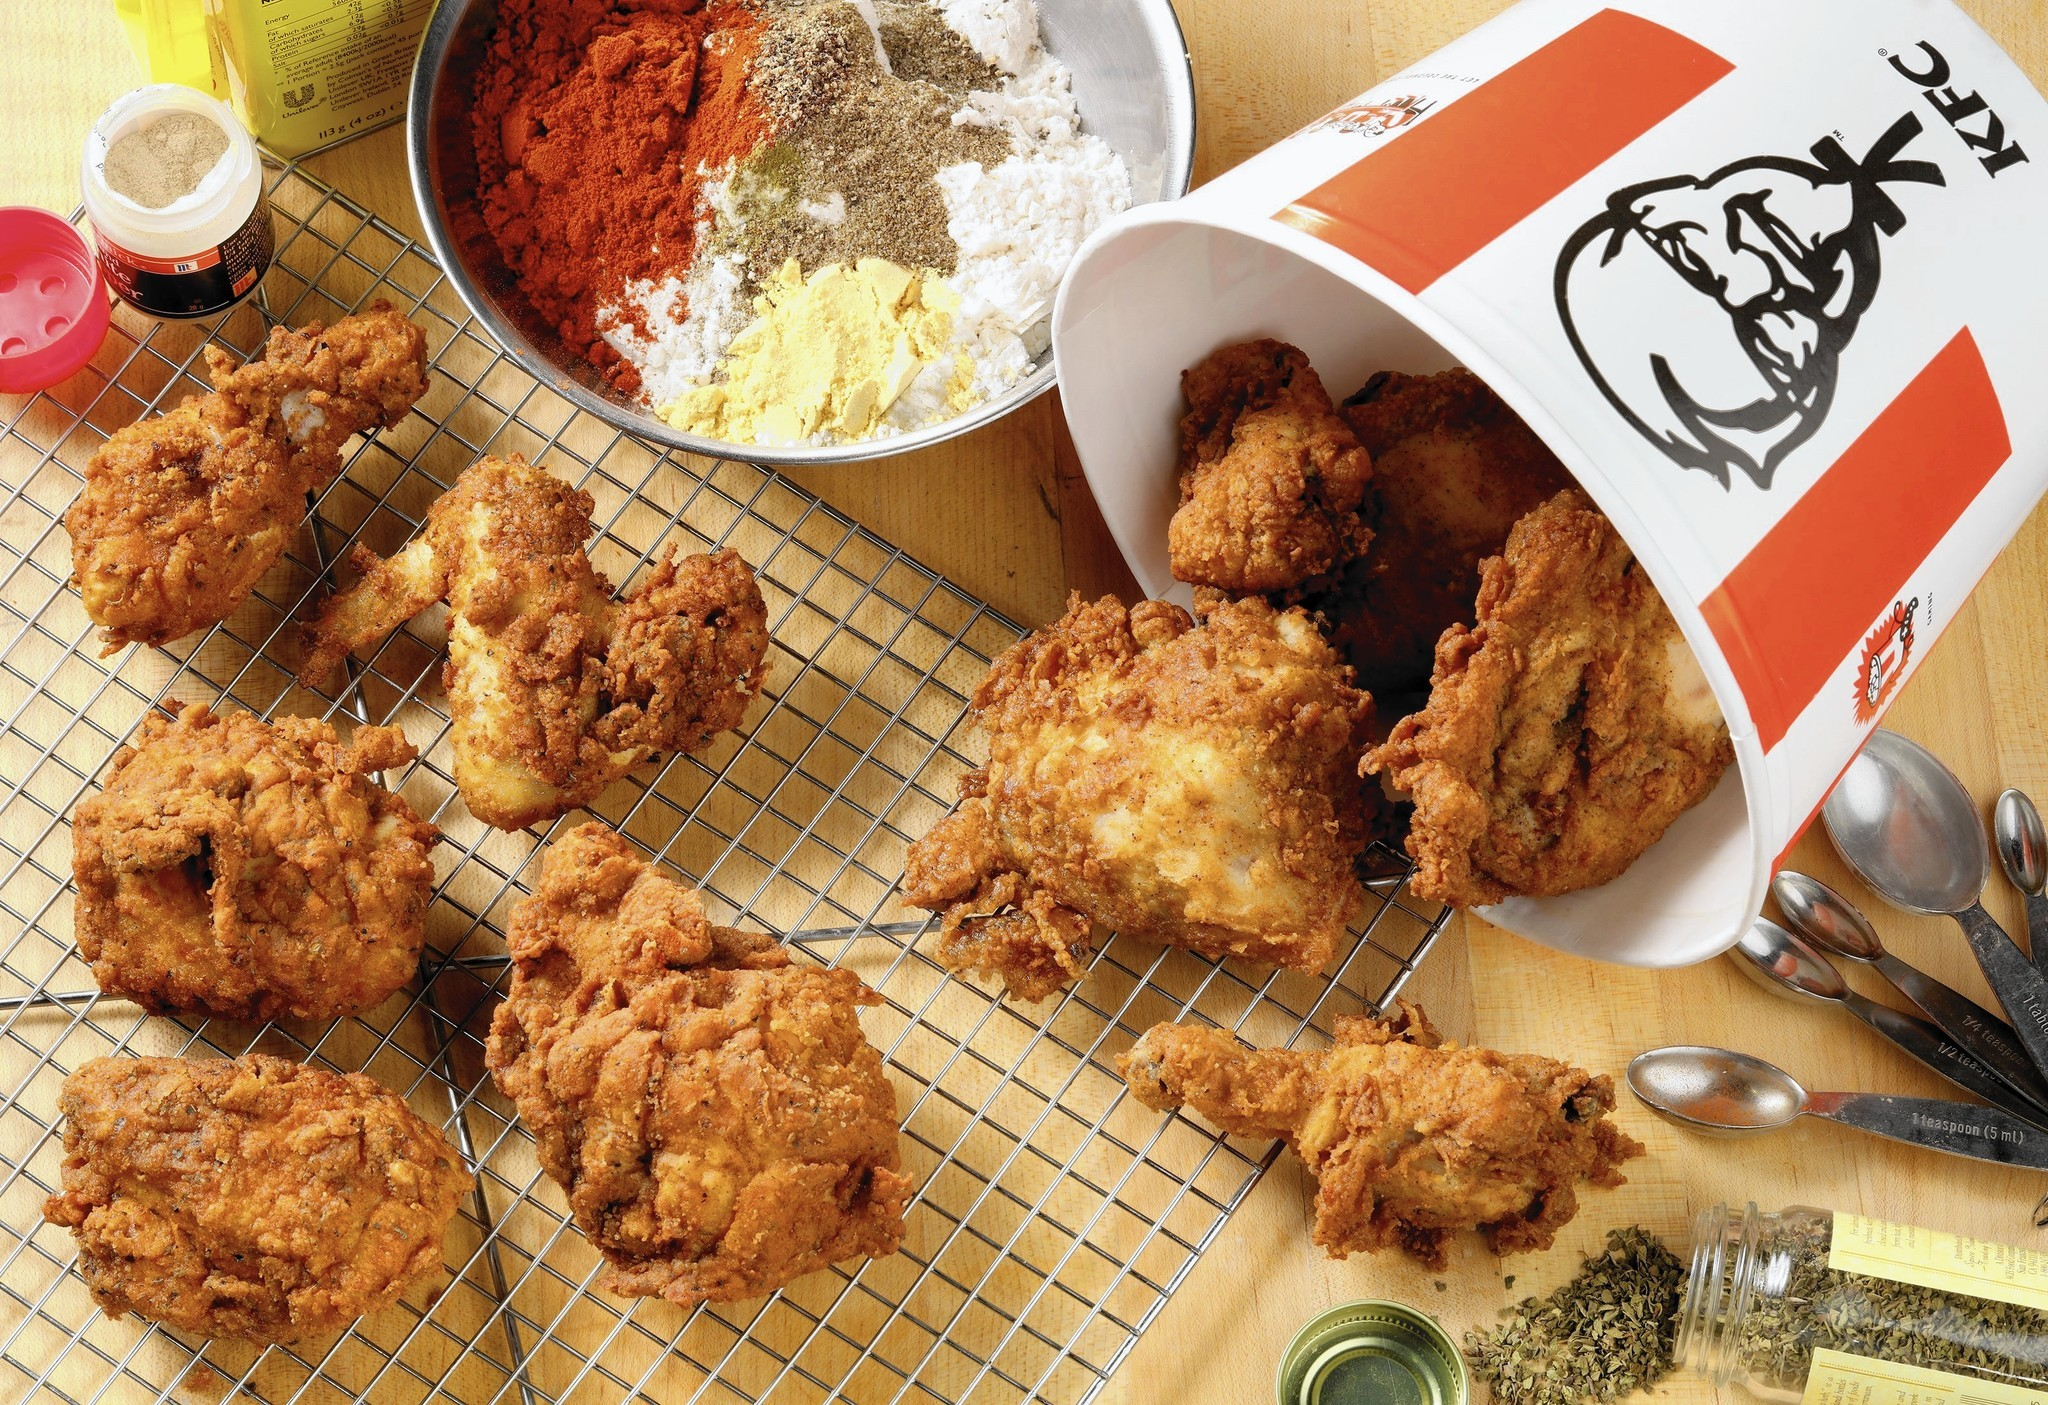 KFC recipe challenge: Tribune kitchen puts the 11 herbs and spices to the test